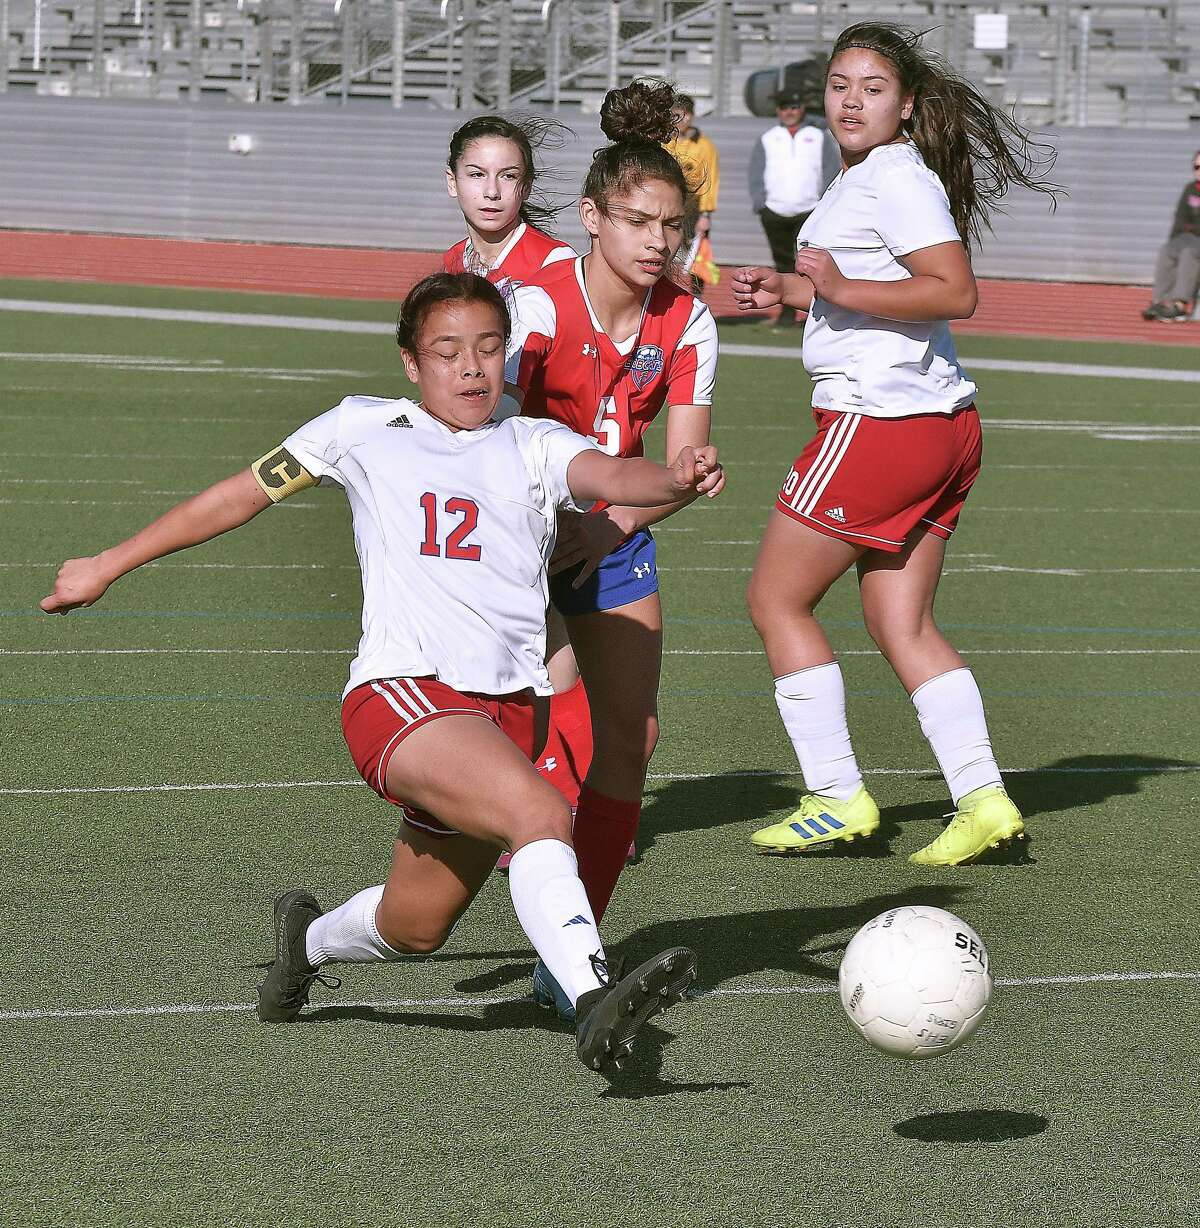 Jackeline Torres gets a shot on goal for Martinin the Border Olympics girls' soccer tournament on Friday, Jan. 3, 2020 at Shirley Field.